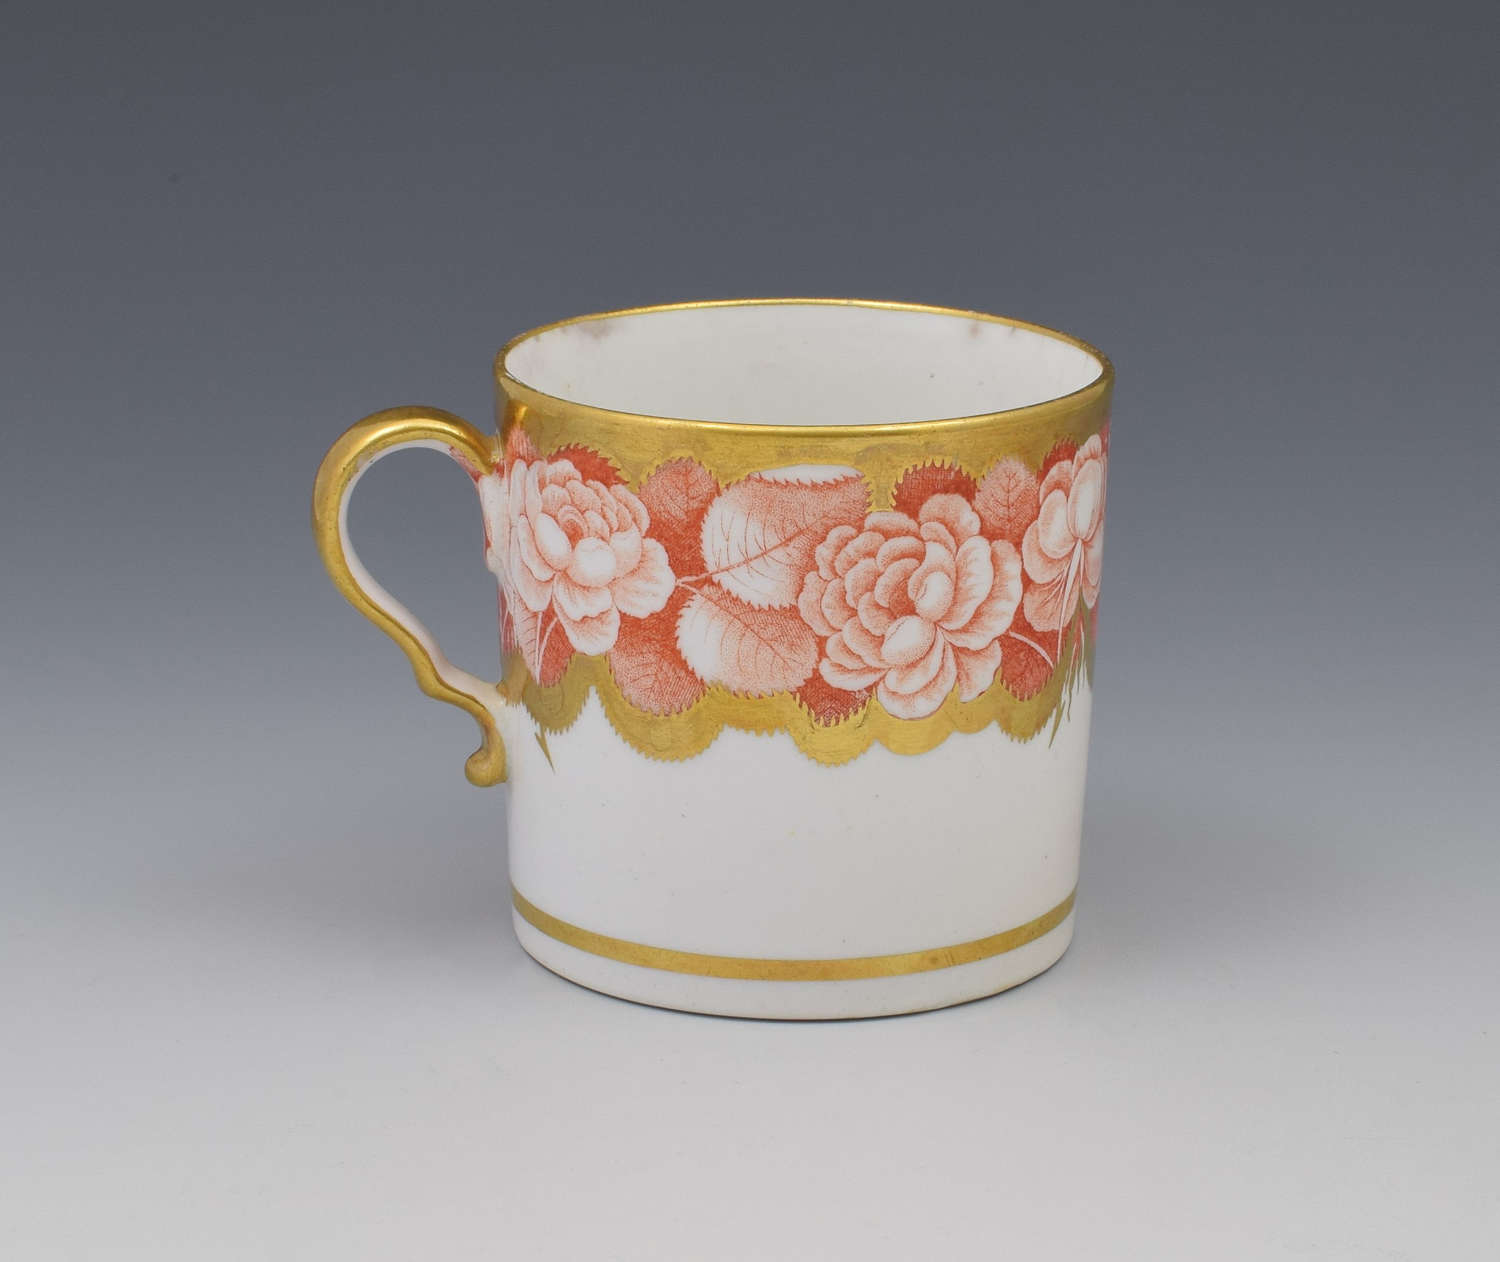 Spode Pluck & Dust Printed Coffee Can Orange Roses 984